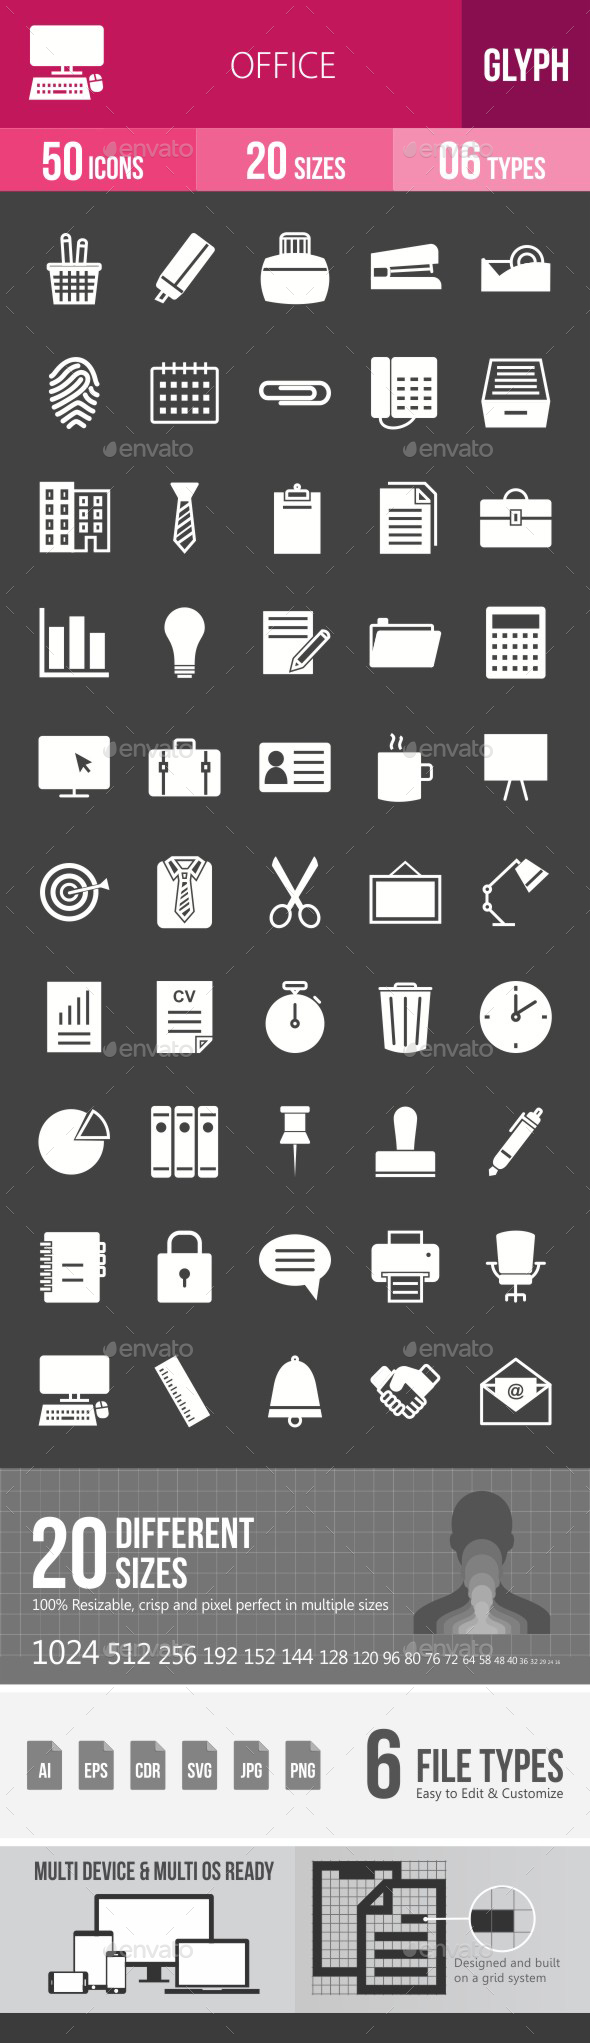 Office Glyph Inverted Icons - Icons